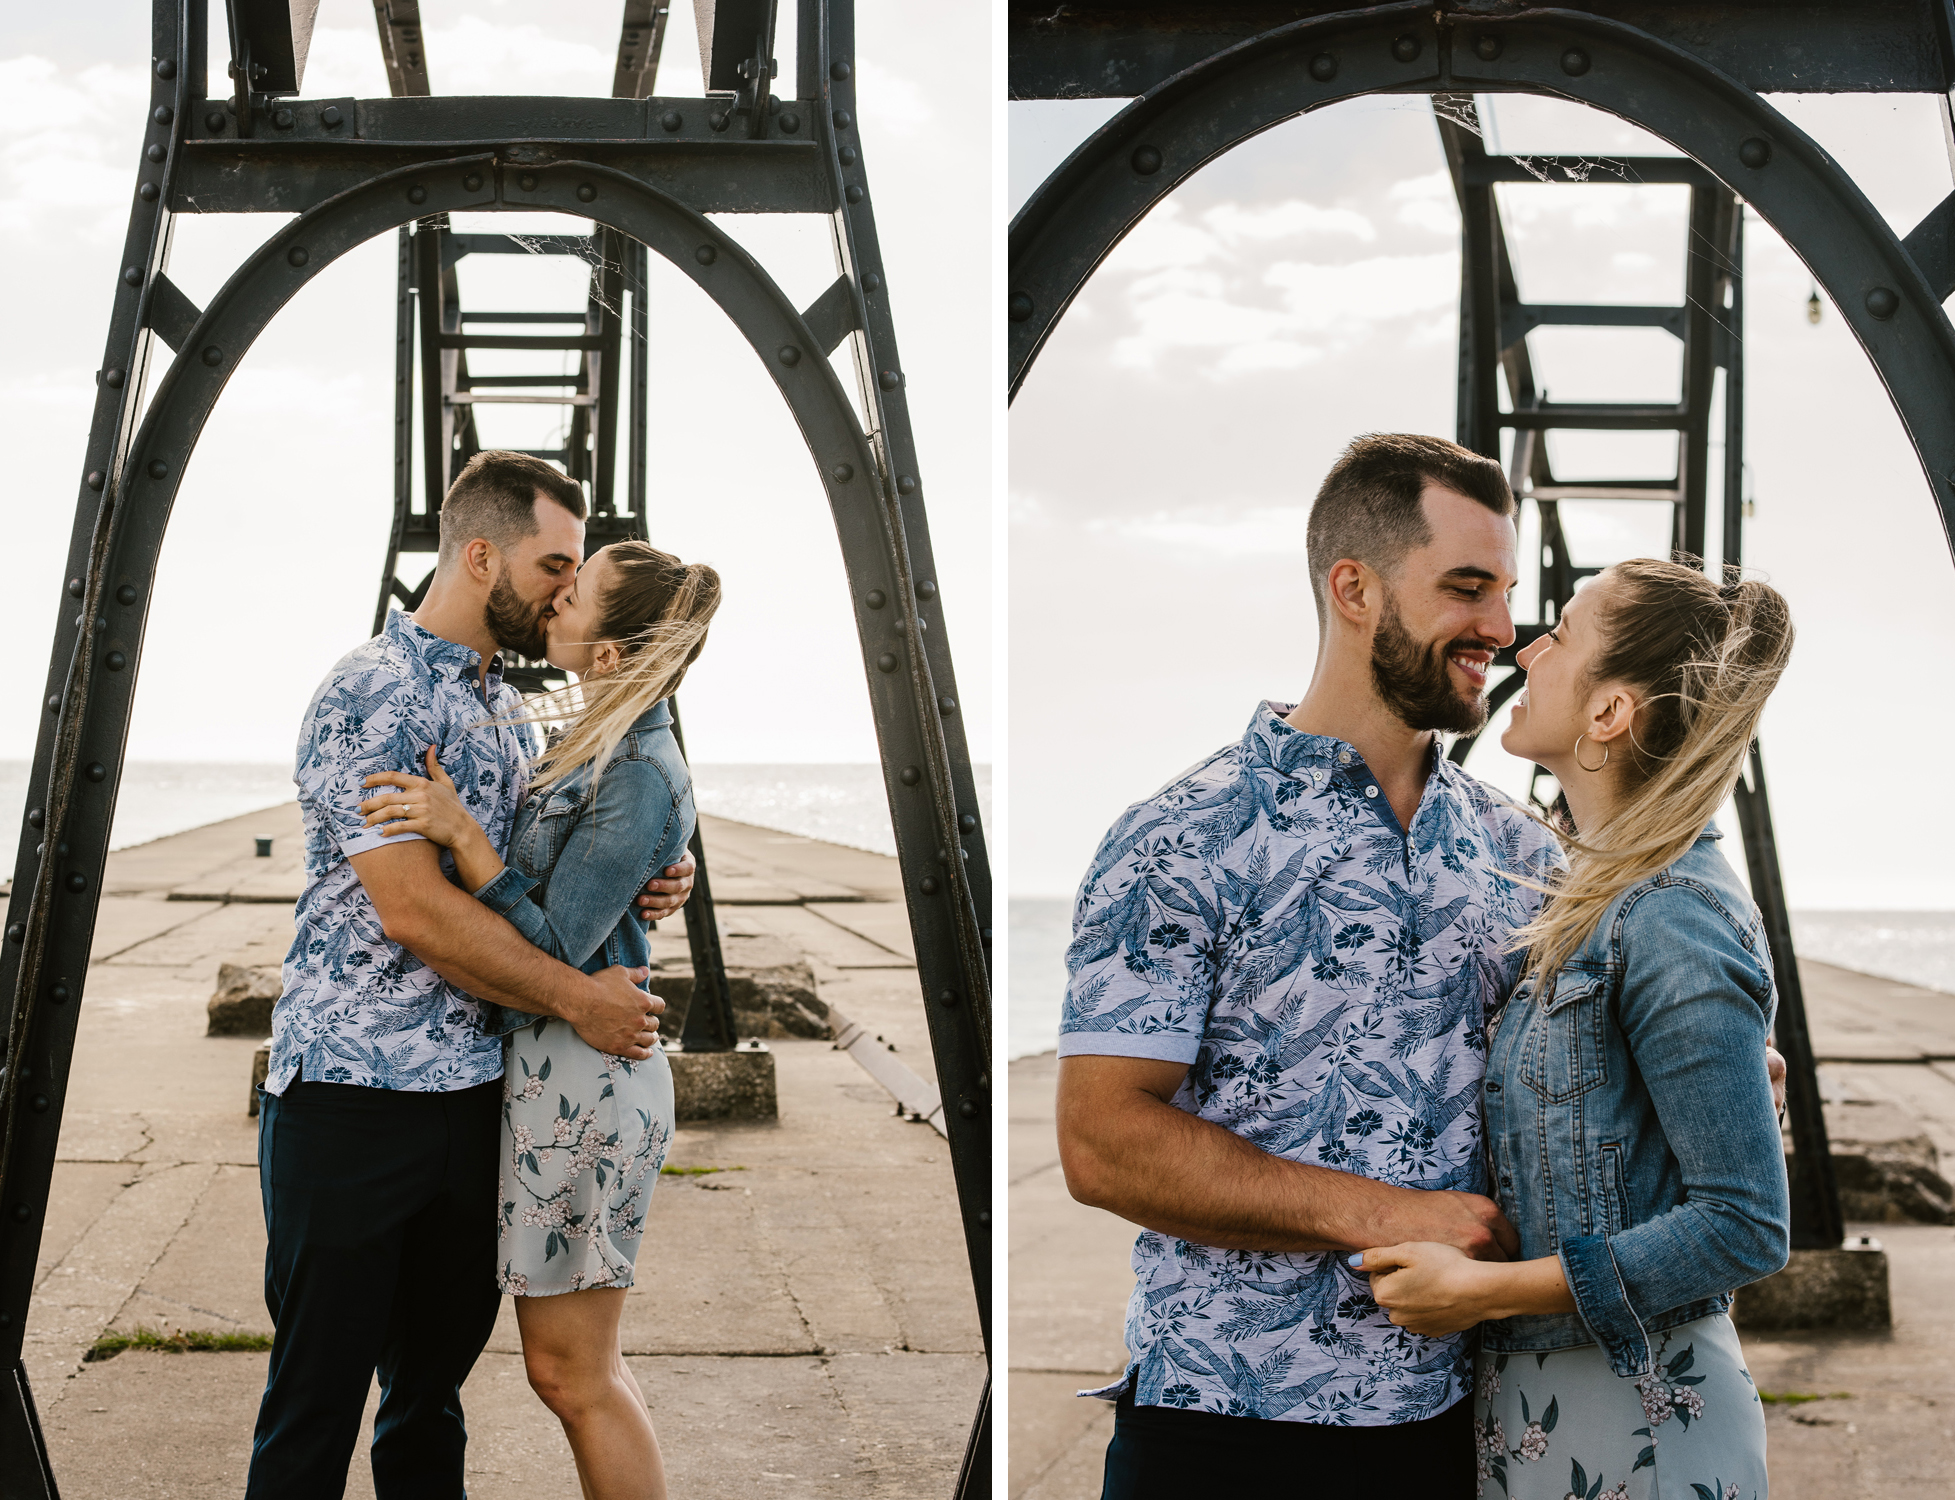 South-Haven-Michigan-Proposal-Engagement-Photographer (51).jpg